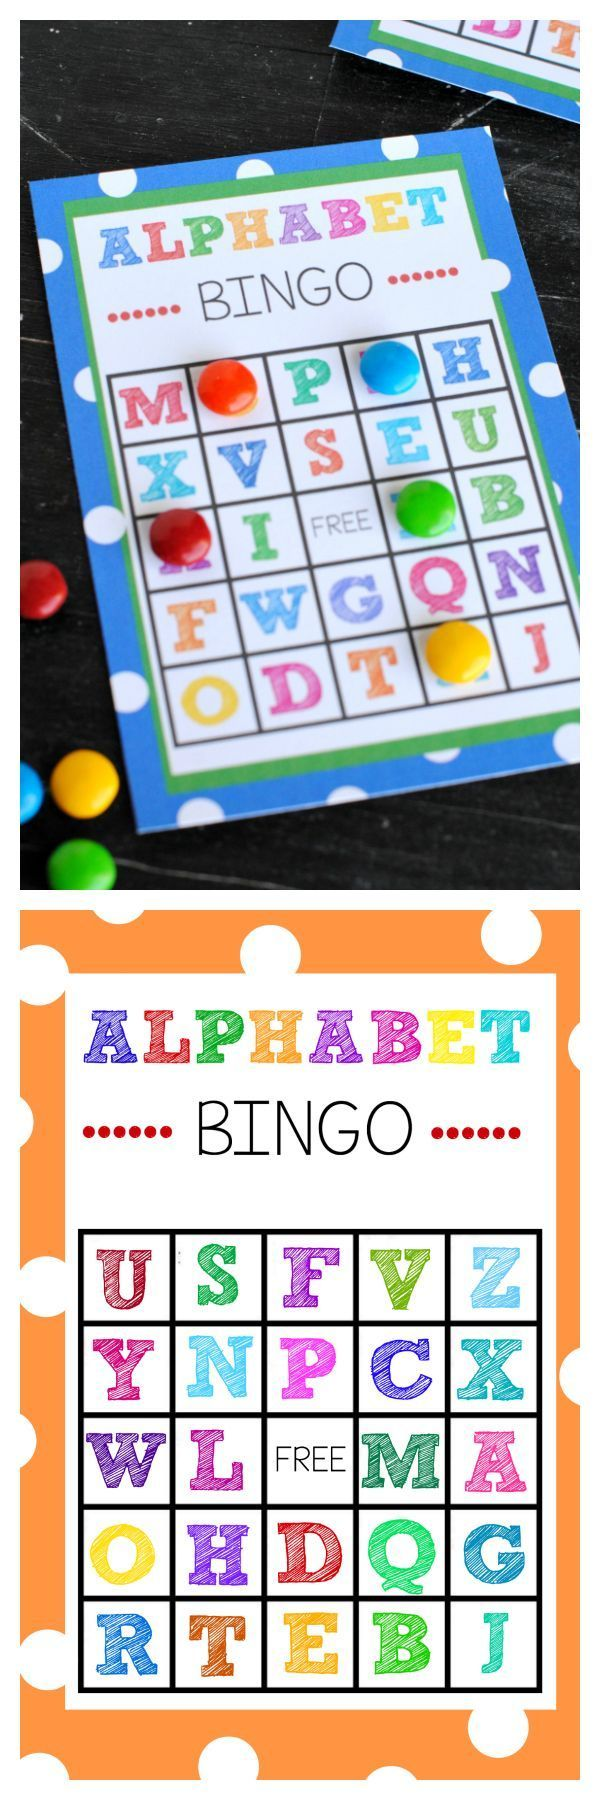 Free Printable Alphabet Bingo Game